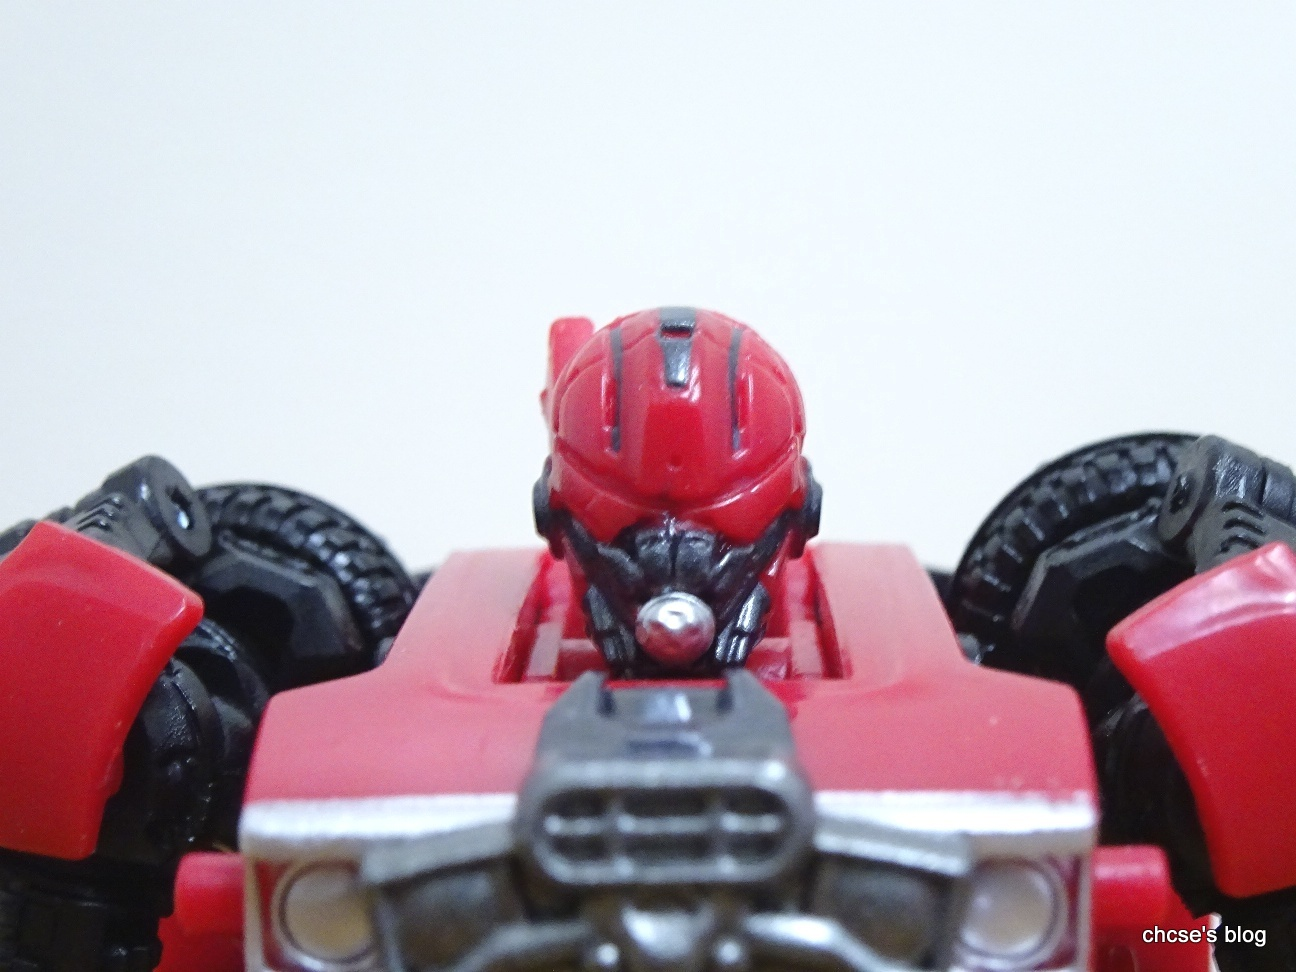 ChCse's blog: Toy Review: Transformers Generations Studio Series